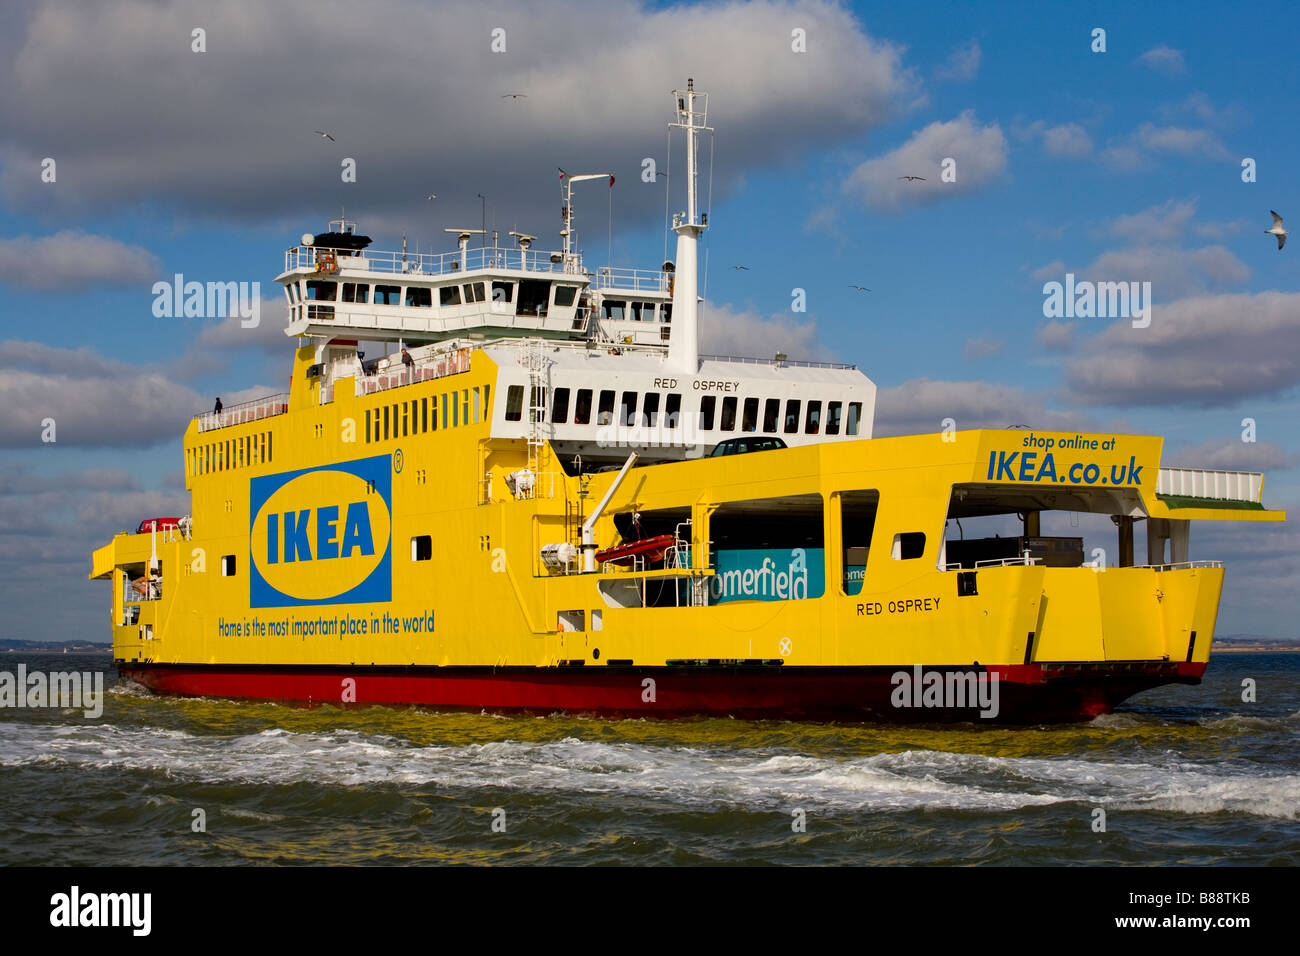 Cowes to Southampton Red Funnel Car Ferry Ikea Advert - Stock Image